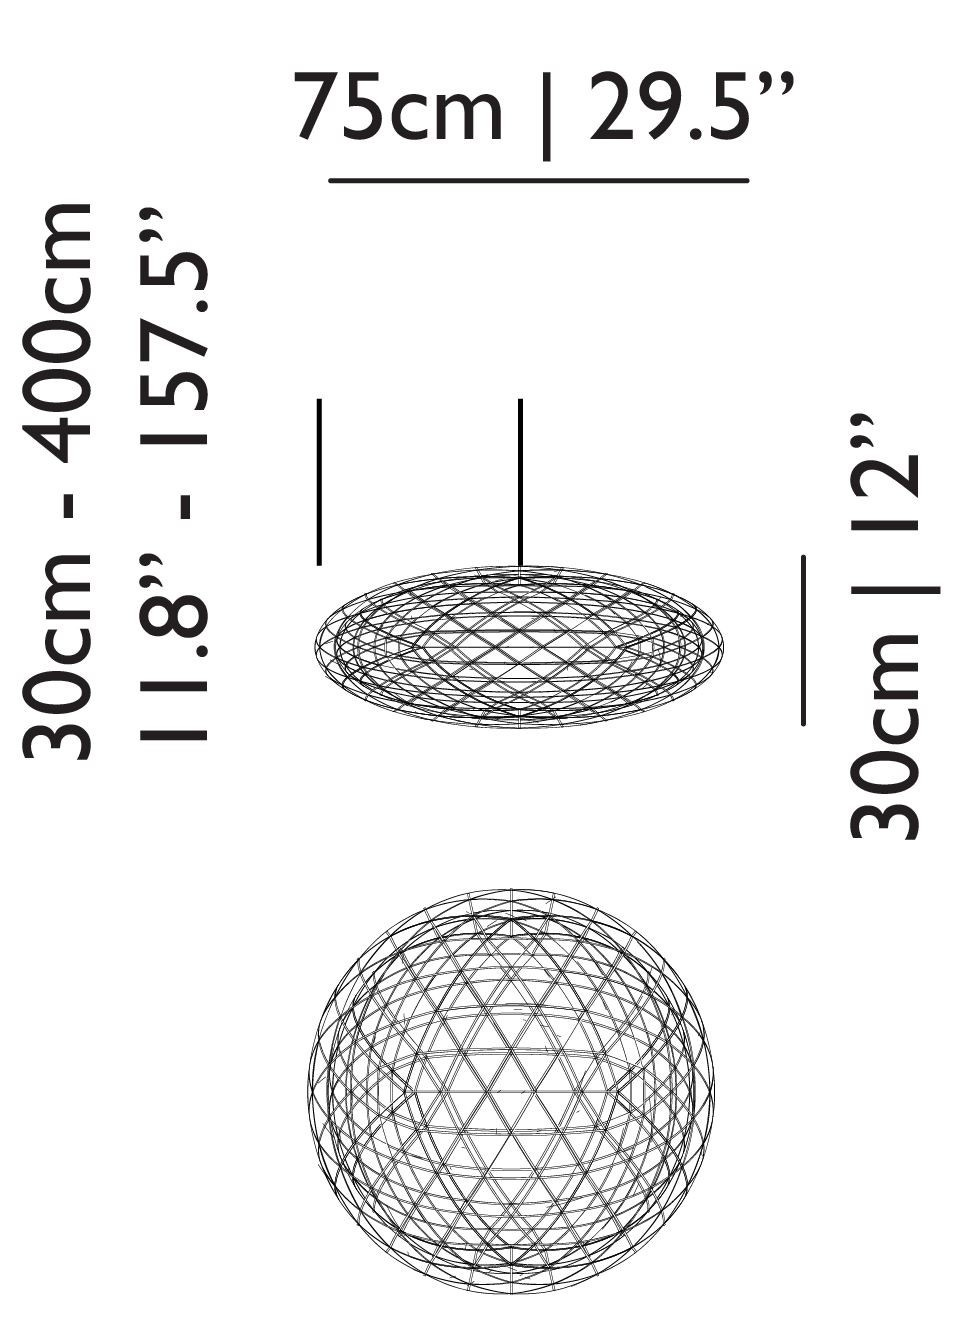 Moooi Raimond Zafu Suspension Lamp - Modern Planet for Moooi Raimond Zafu  143gtk